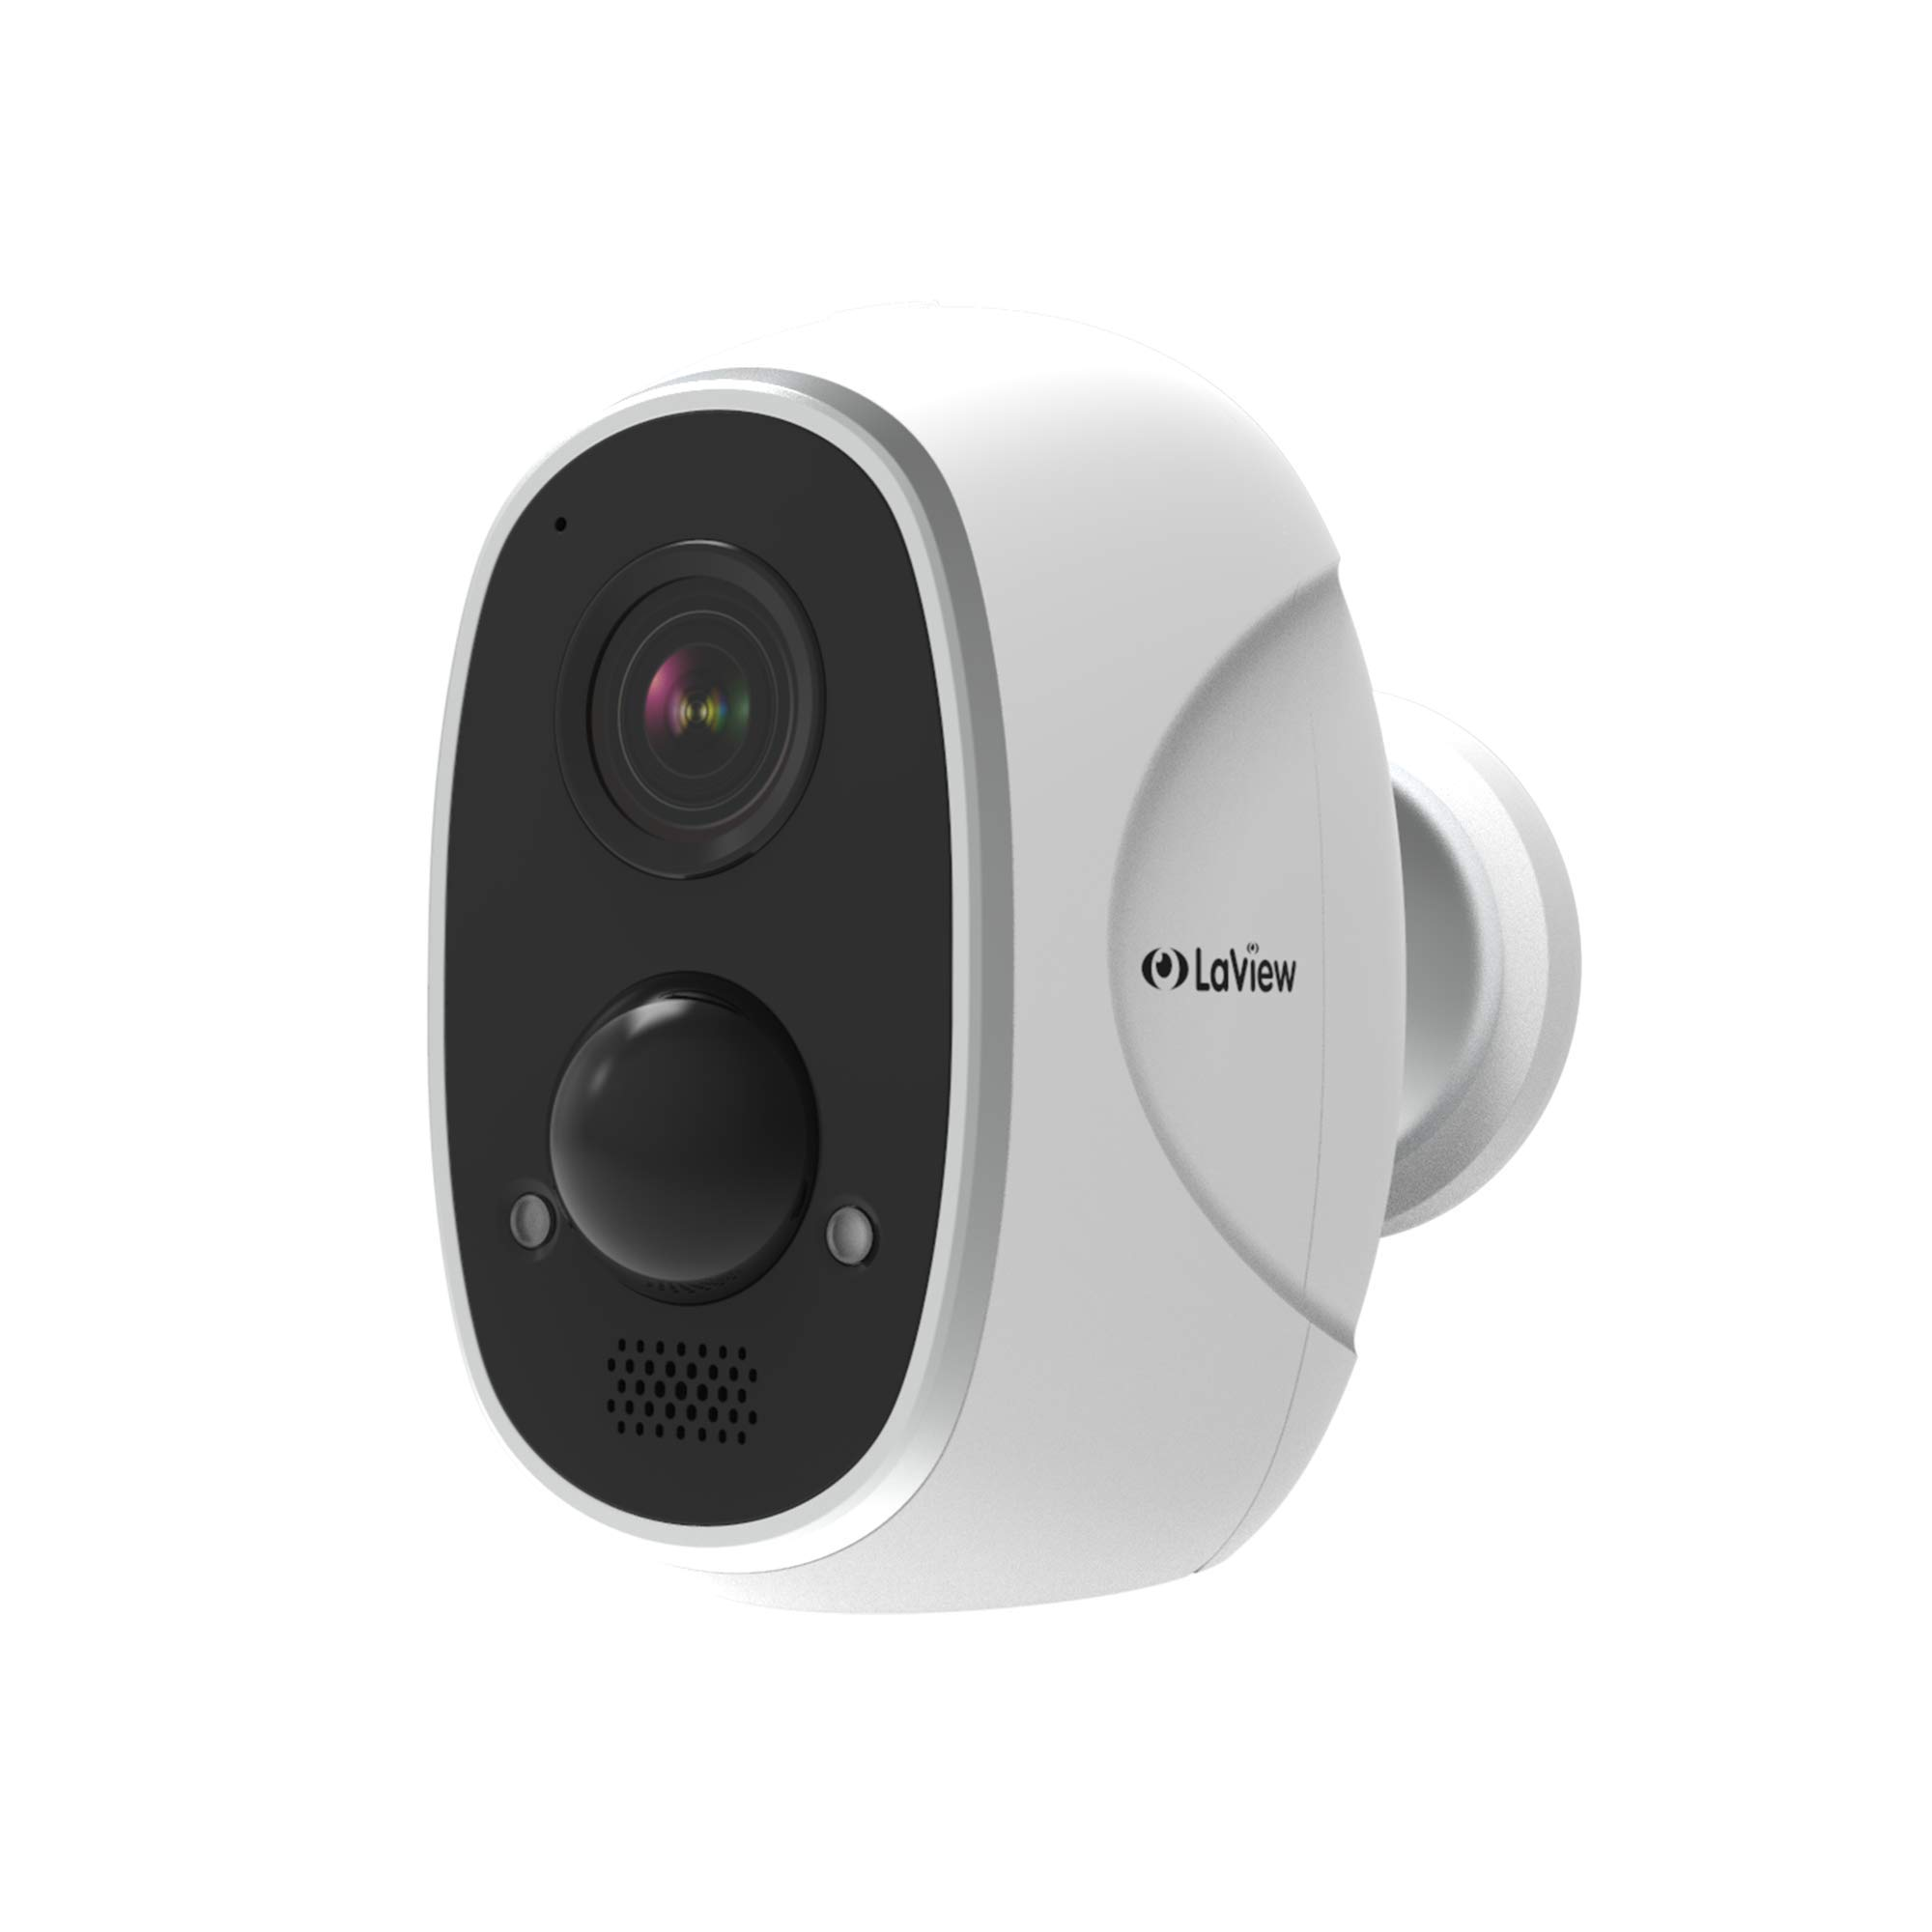 LaView ONE Link 1080P Wireless Security Camera, Battery Powered Outdoor Security Cameras Two Way Audio, PIR Thermal Detection, Compatible with Alexa, Weatherproof Wireless Home Security Cameras